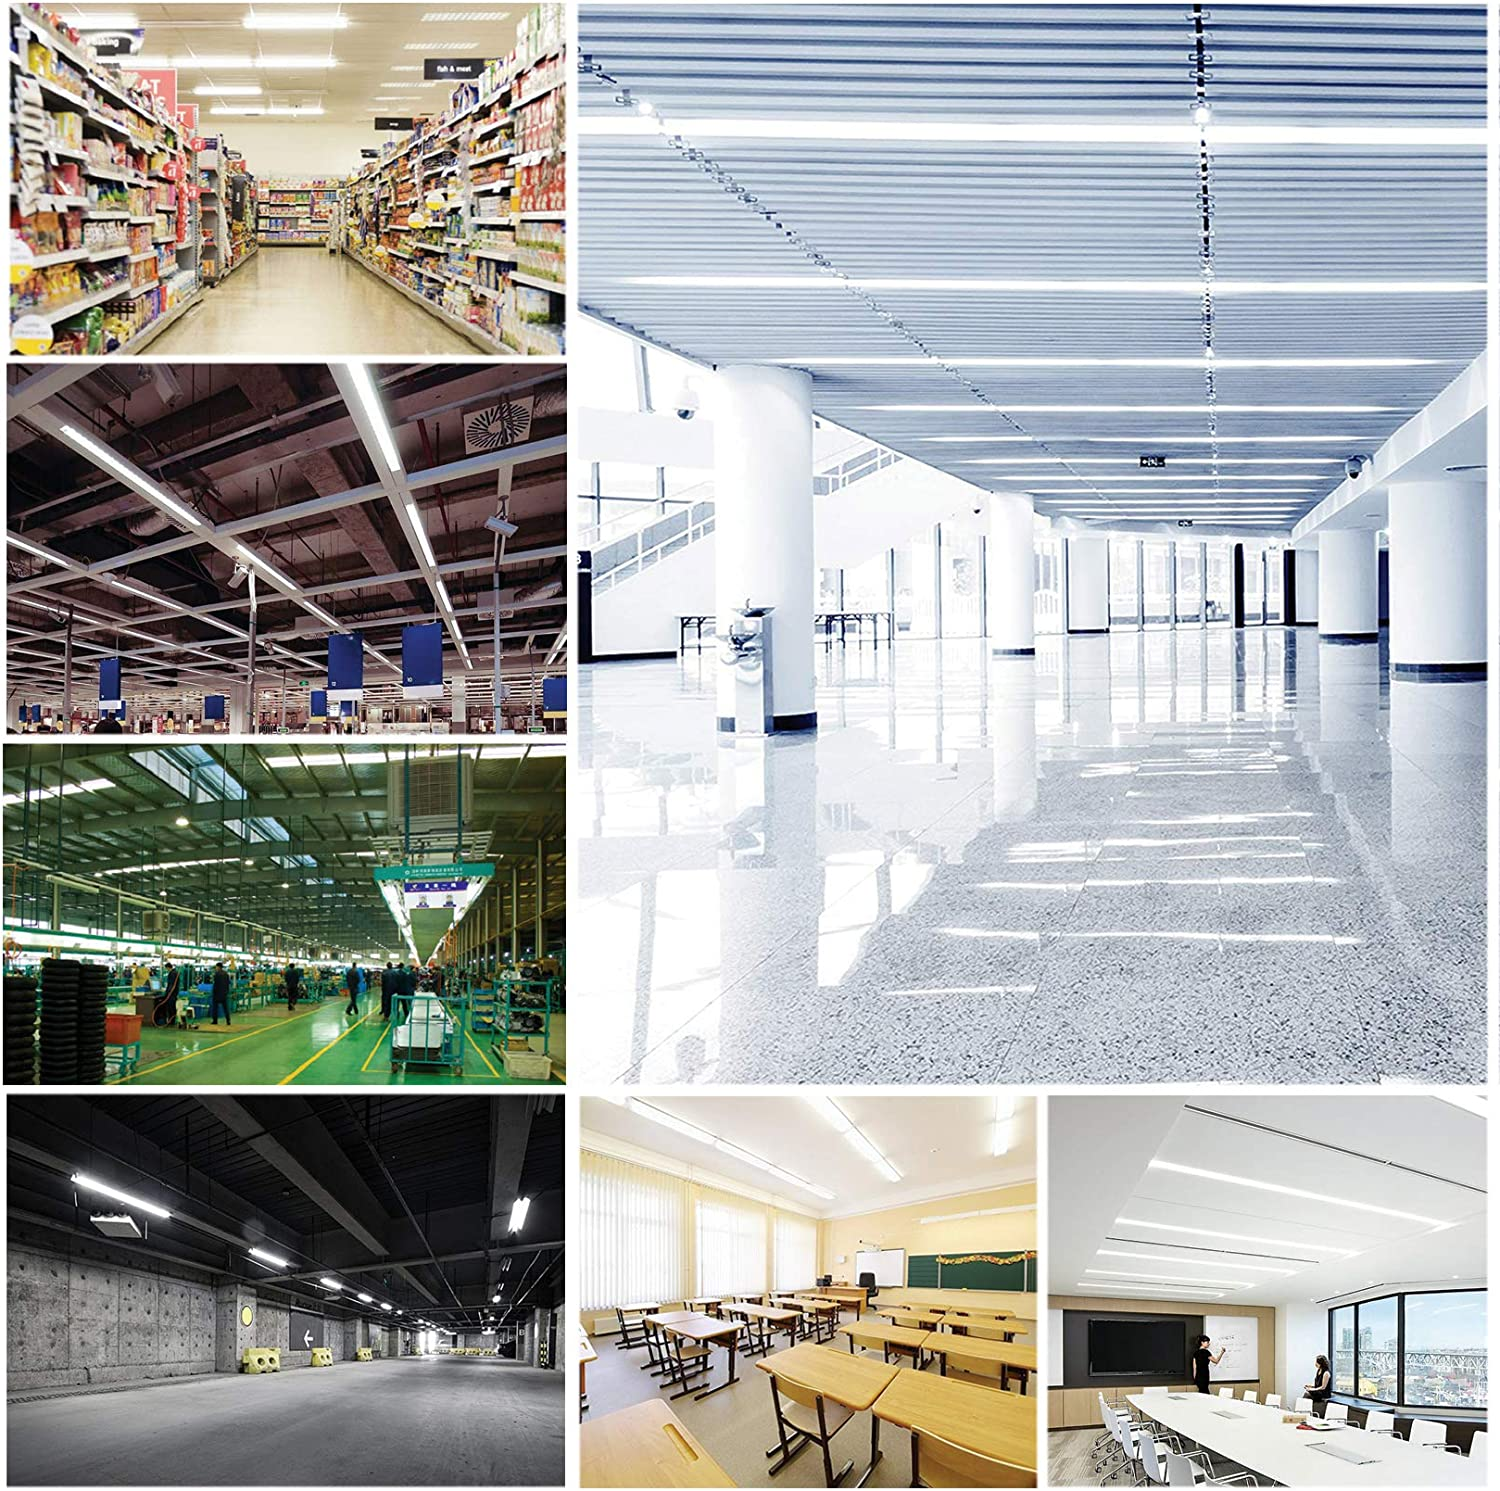 T8 LED Tube Light,360 Degree Rotatable R17D Base,8FT 60W V-Shaped Double Row Indoor Bulb Light for Warehouse,Shop,Daylight White 6500K,Clear Cover,T12 8 Foot Bulbs to Replace Fluorescent Light,6 Pack